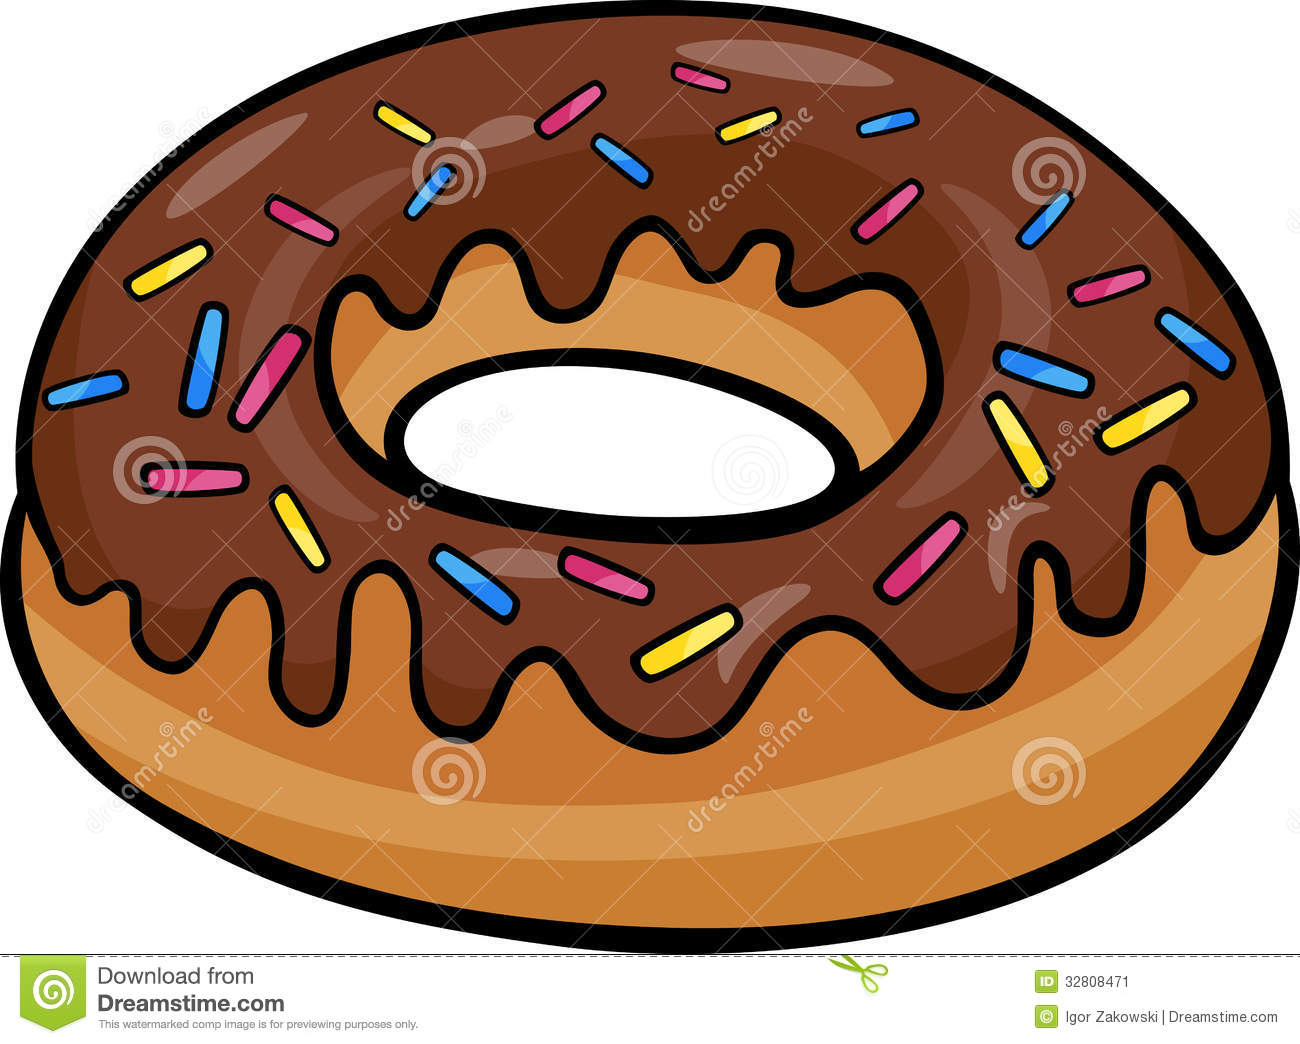 donut clip art cartoon illustration stock vector illustration of rh dreamstime com chocolate cake clipart images chocolate cake clipart black and white